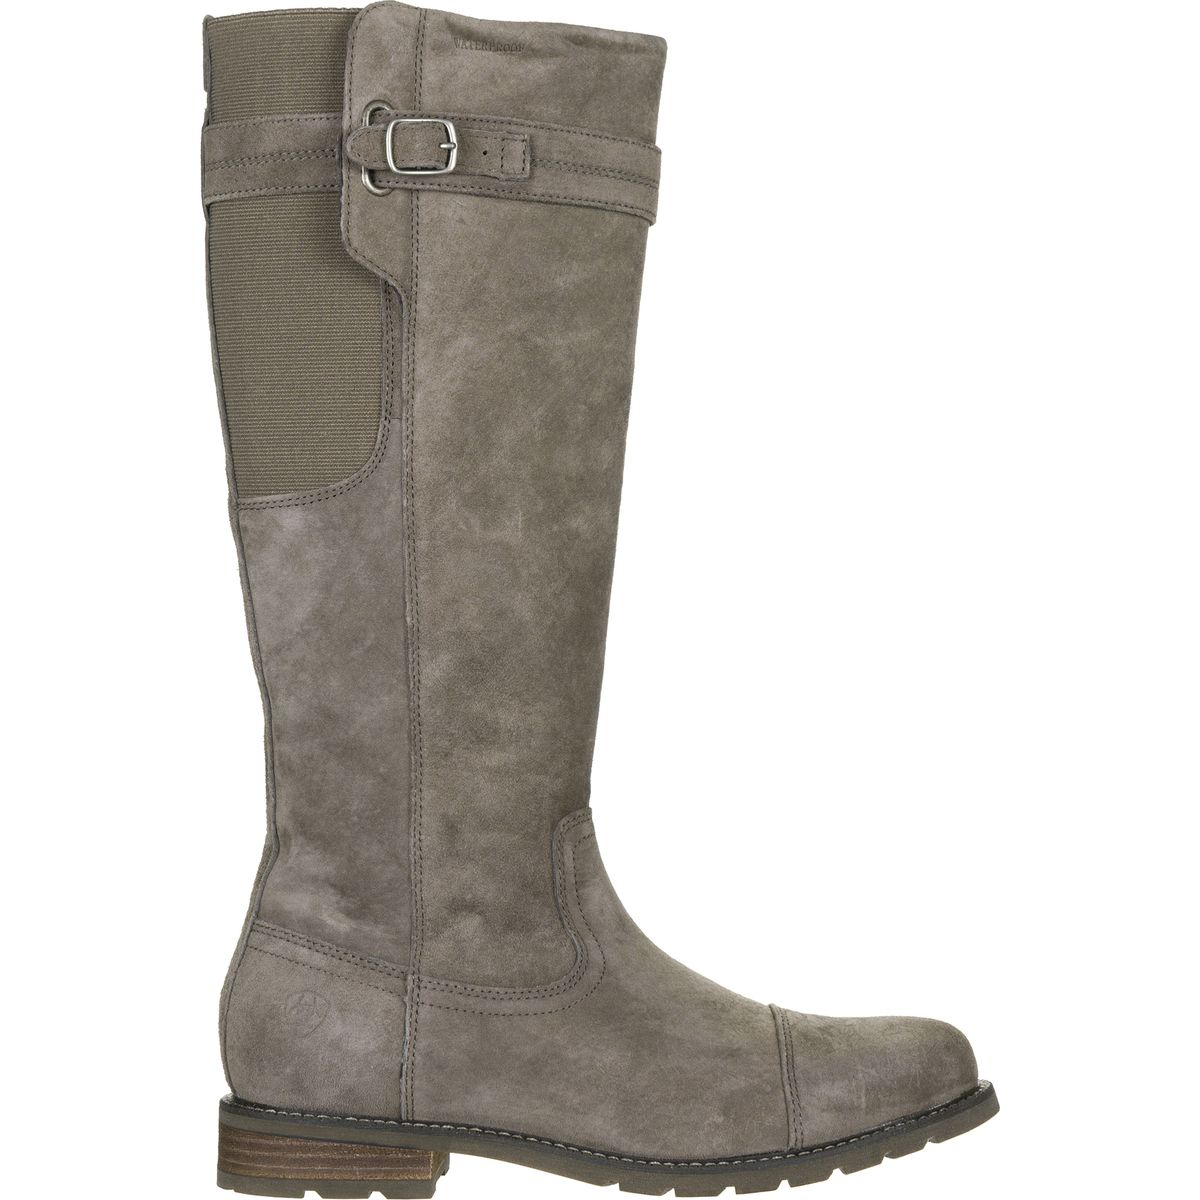 Ariat Stoneleigh H2O Boot - Women's Taupe Brown, 6.0 ARA002H-TPBN-S6